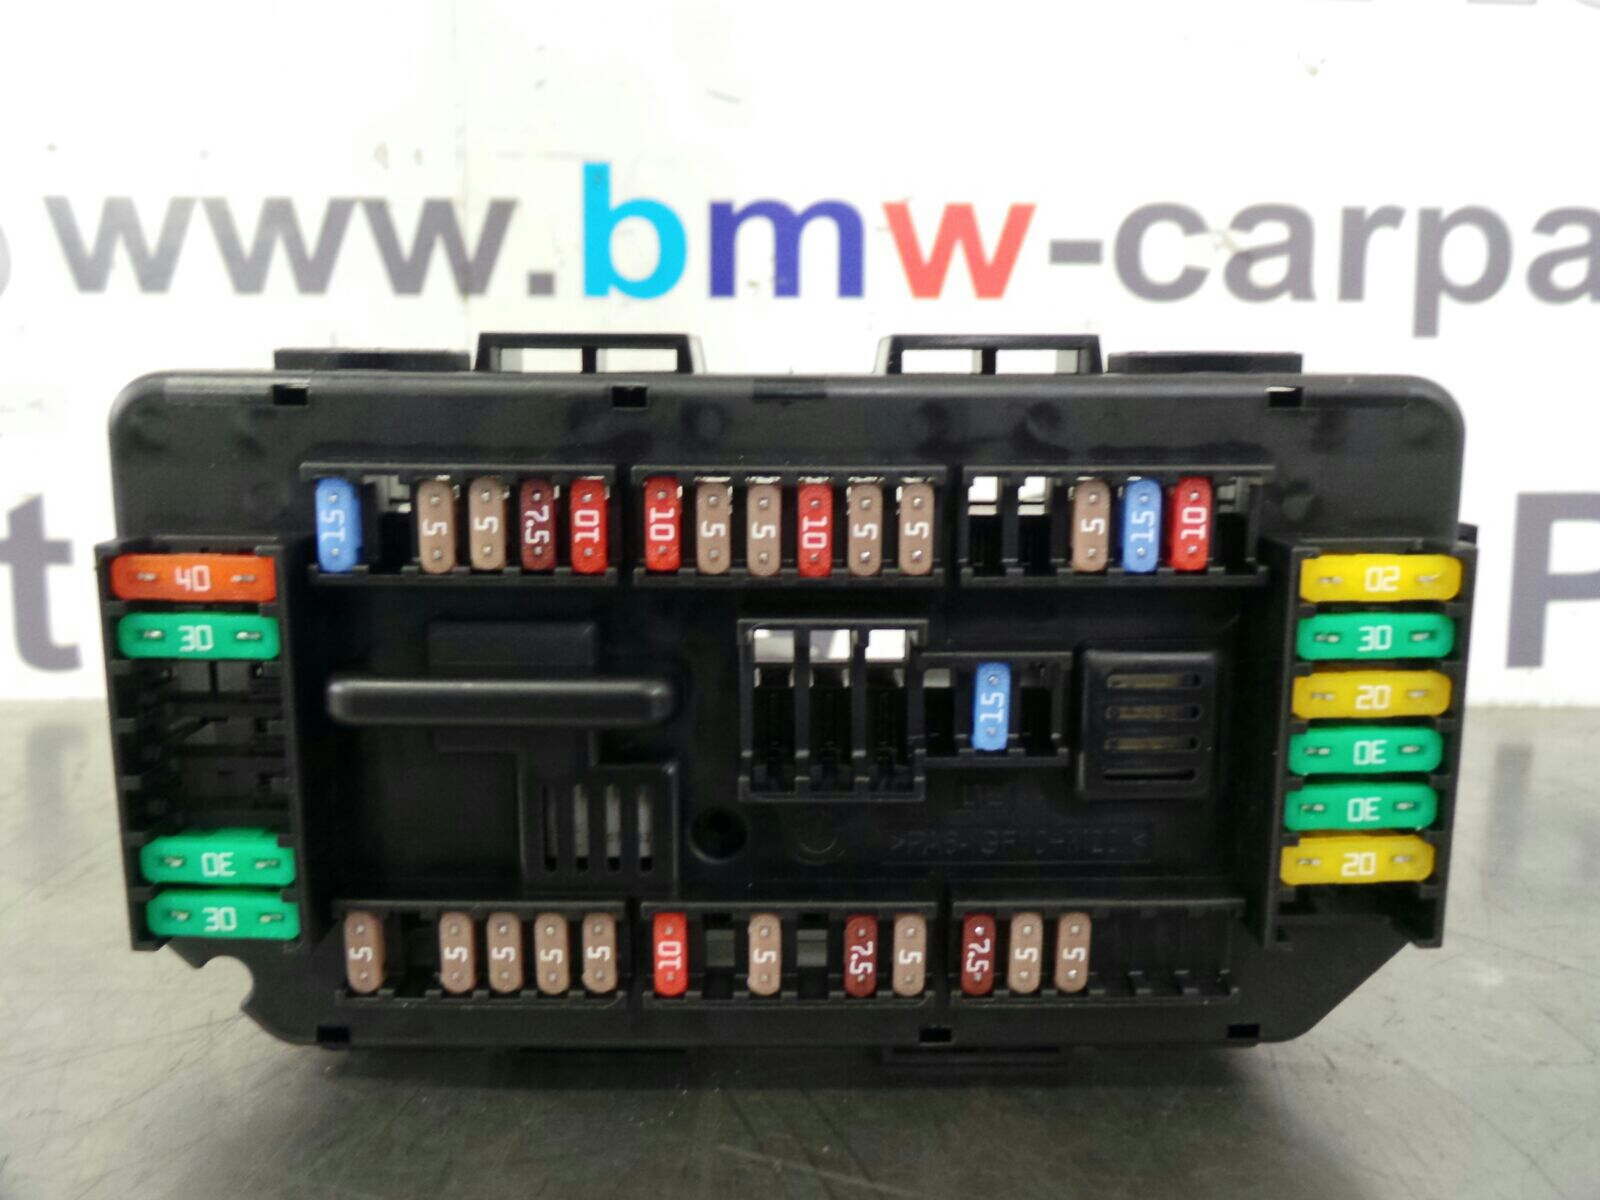 Ford Fiesta 51 Plate Fuse Box : Amazing bmw f fuse box location ideas best image wire